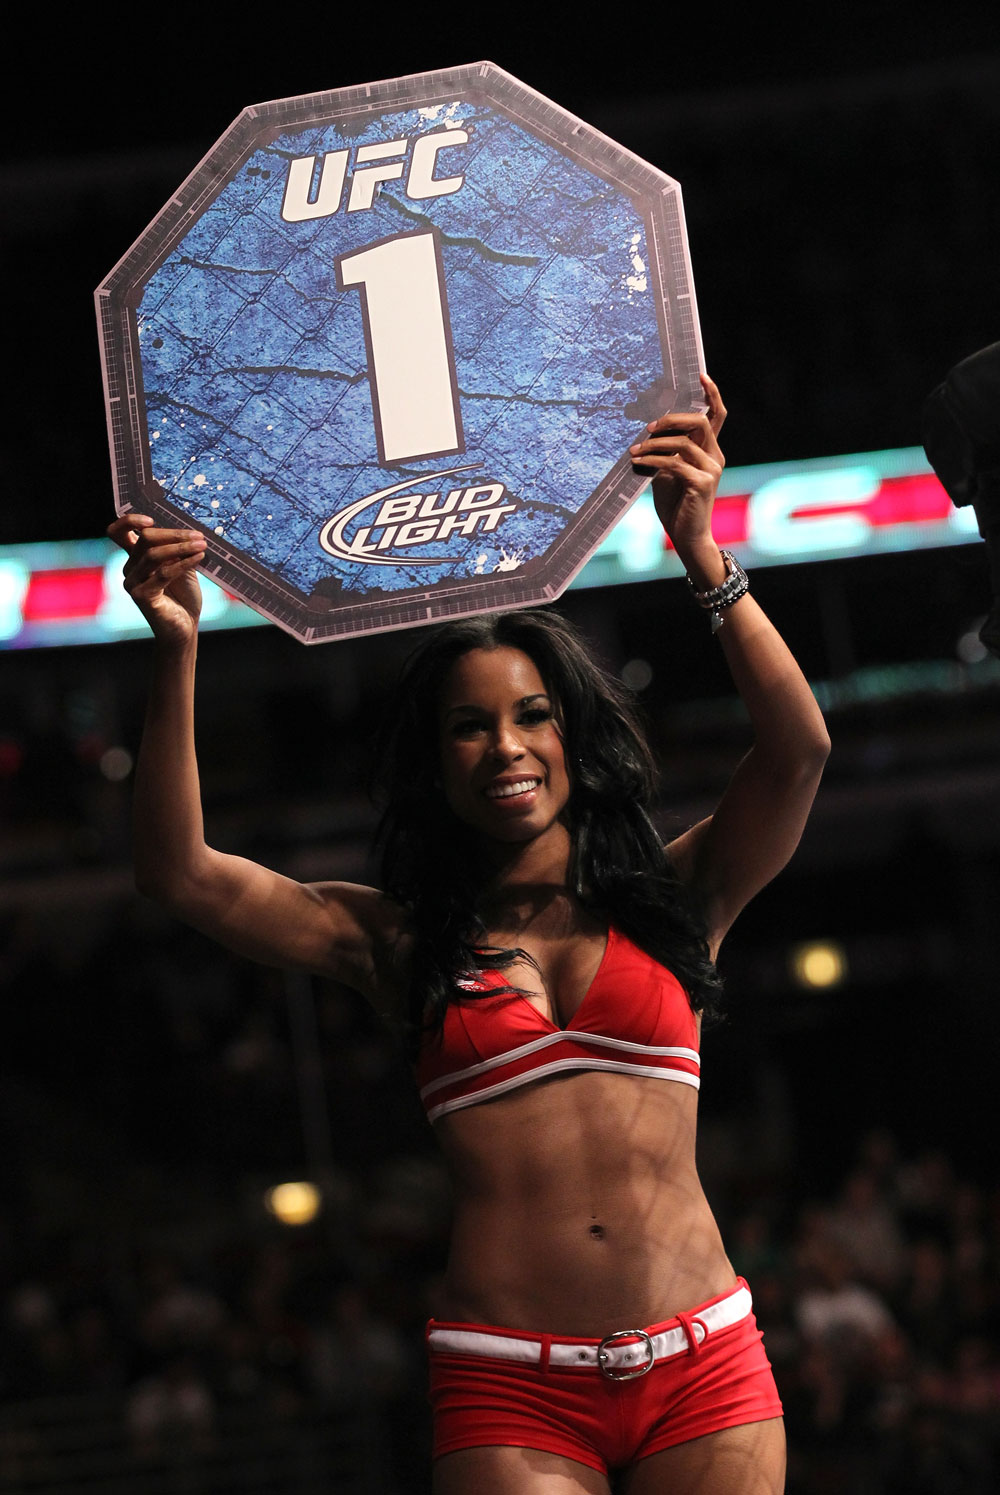 CHICAGO, IL - JANUARY 28:  UFC Octagon Girl Chandella Powell introduces round 1 before the Johnson vs Roller bout during the UFC on FOX event at United Center on January 28, 2012 in Chicago, Illinois.  (Photo by Nick Laham/Zuffa LLC/Zuffa LLC via Getty Images) *** Local Caption *** Chandella Powell